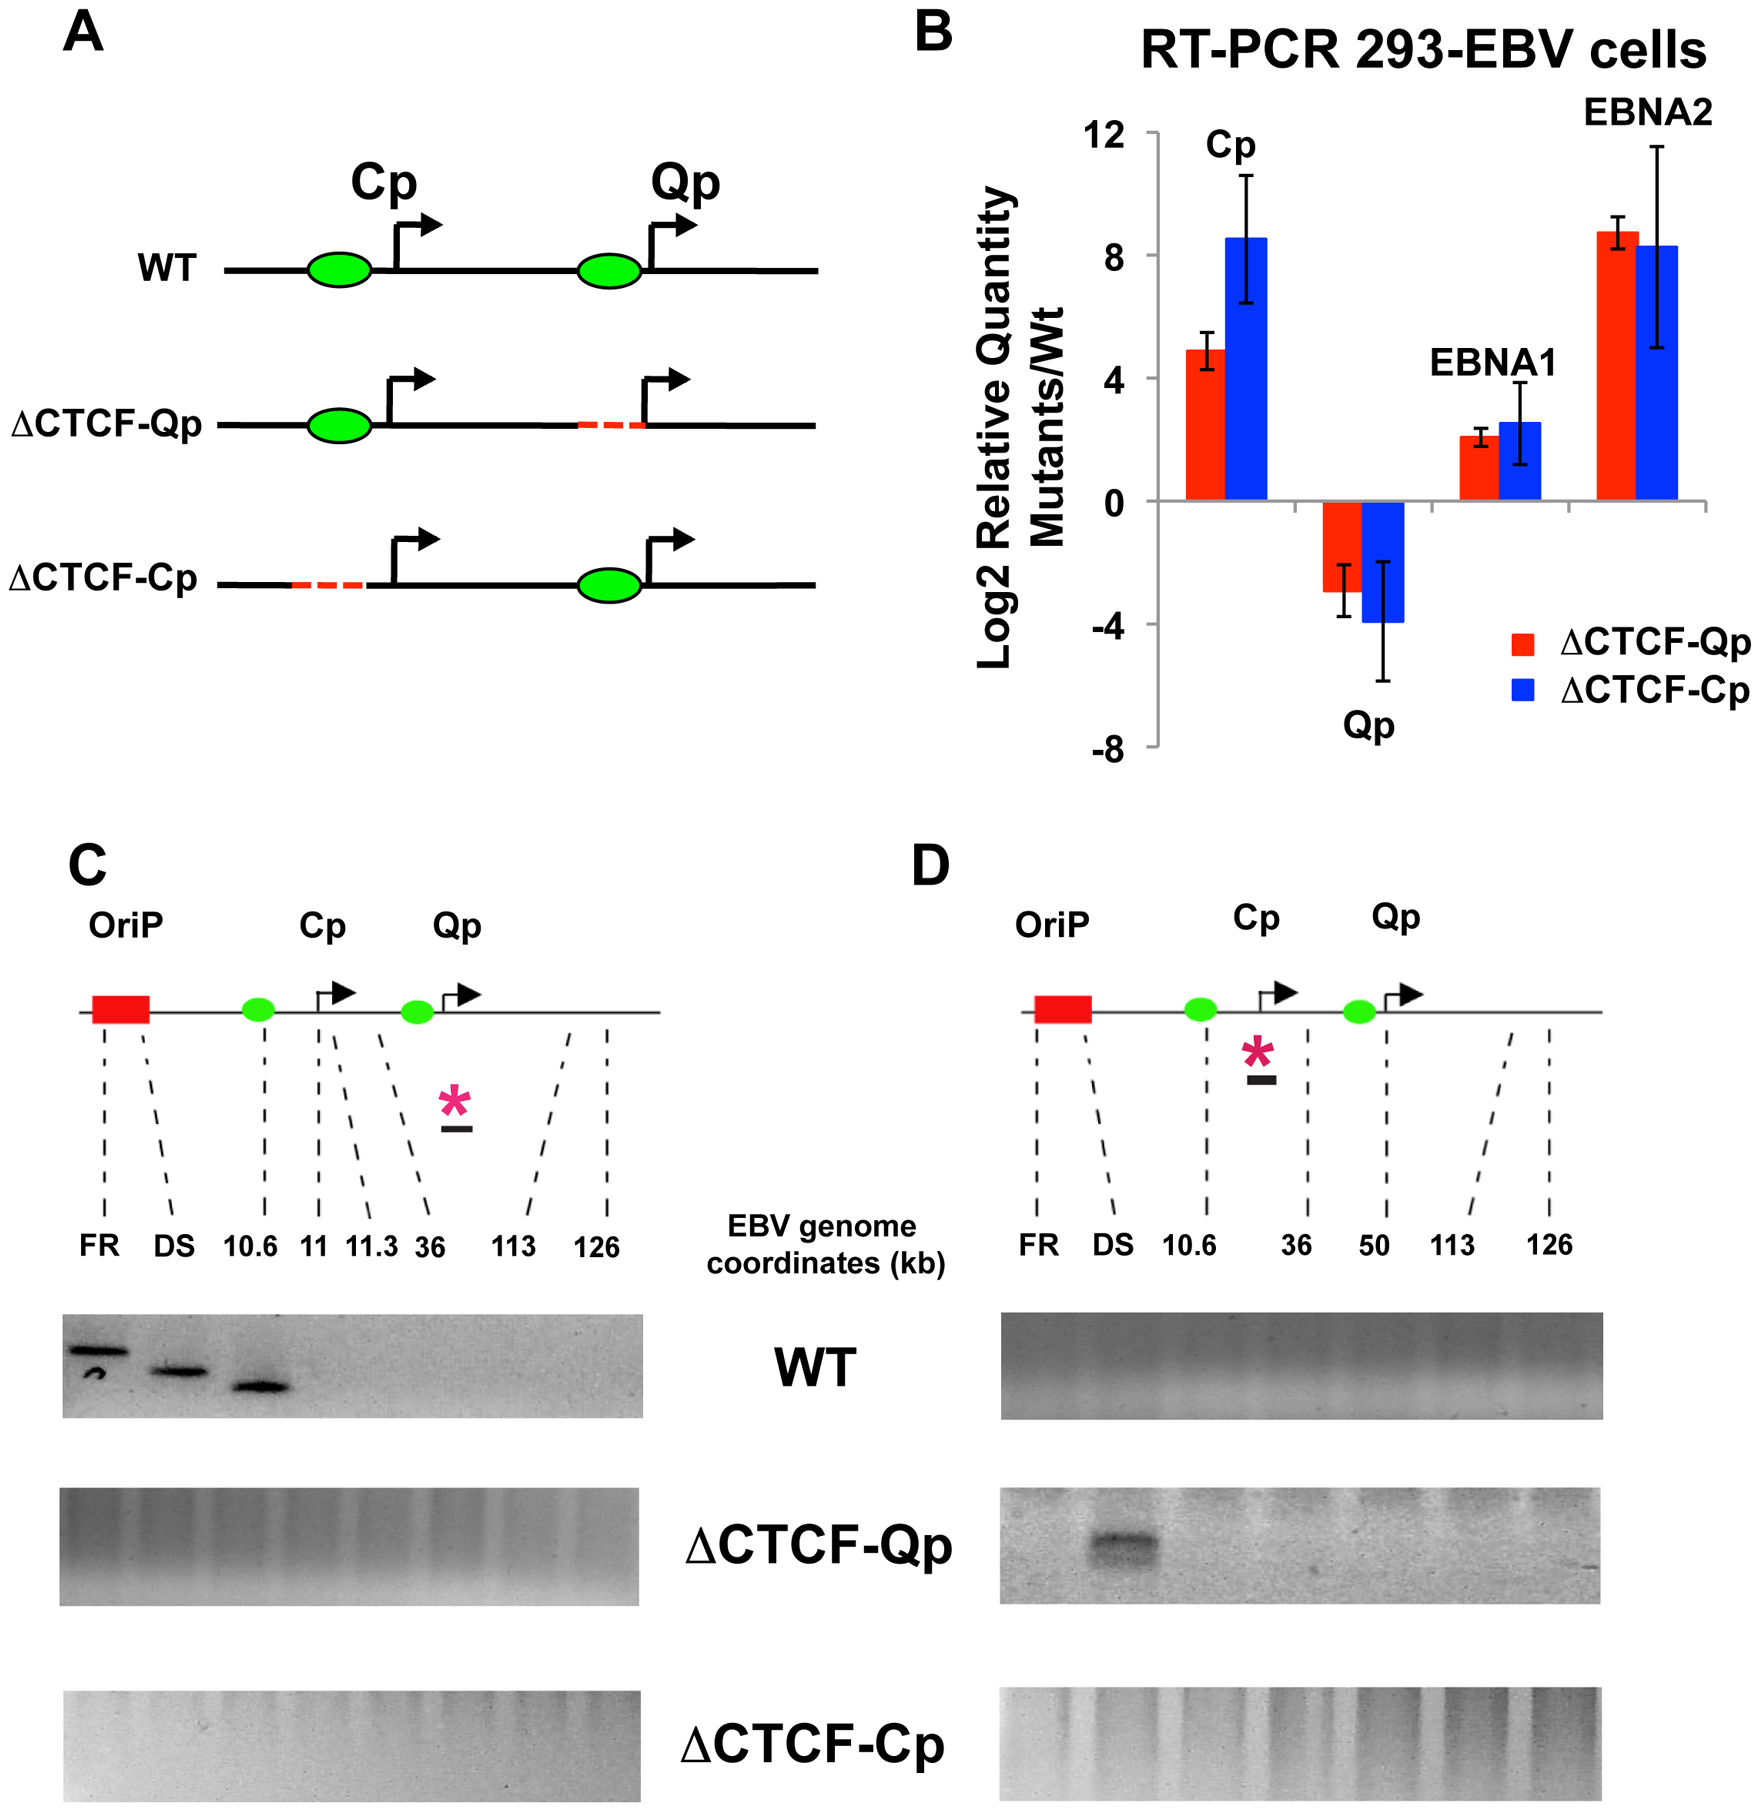 Mutation in the CTCF binding site at Qp and at Cp alters chromatin conformation and promoter activation.